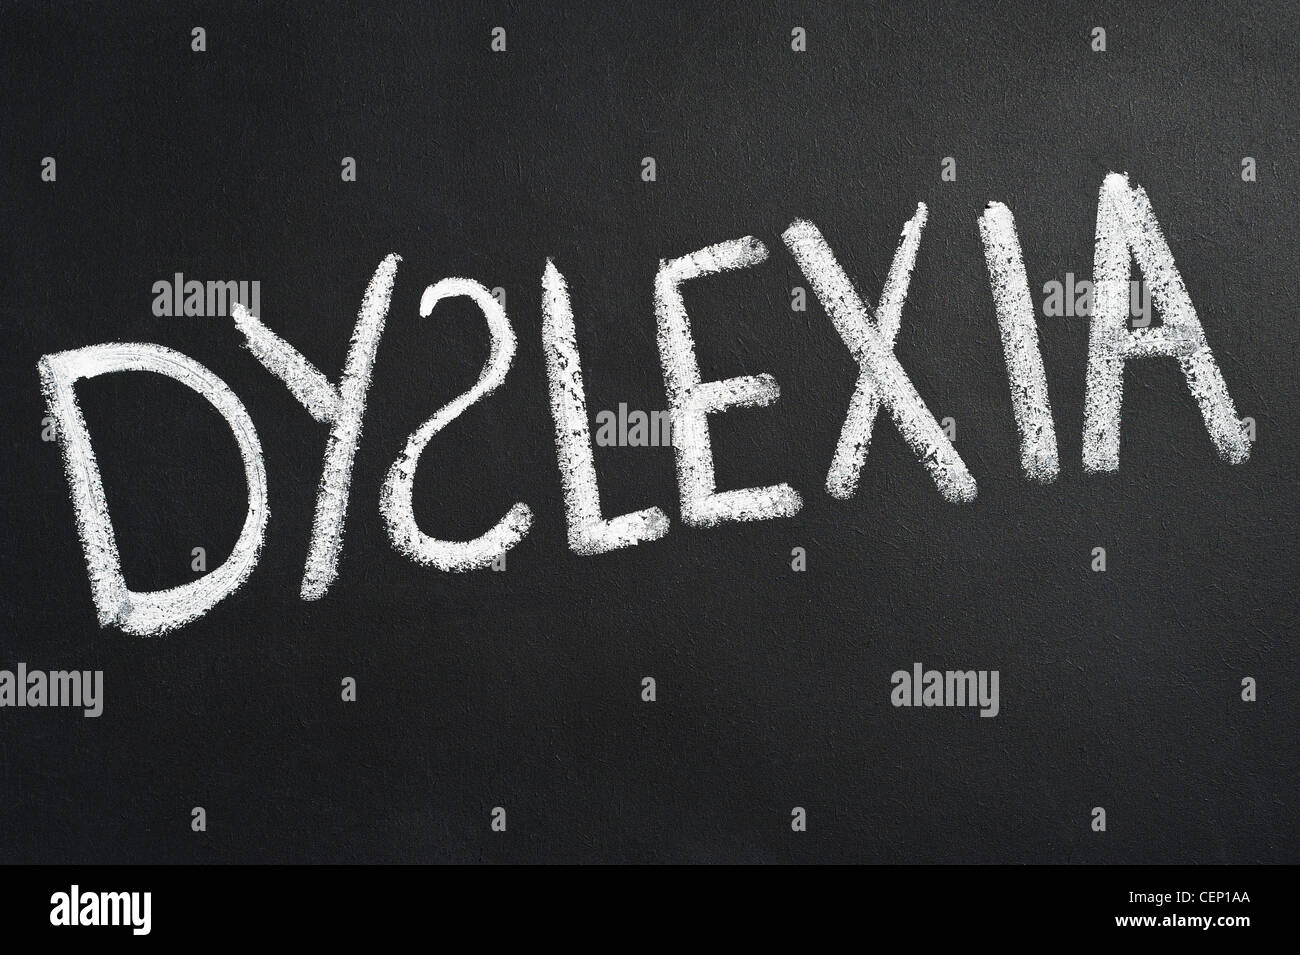 DYSLEXIA CONCEPT. Dyslexia written in chalk on a blackboard with the S facing the wrong way Concept image - Stock Image